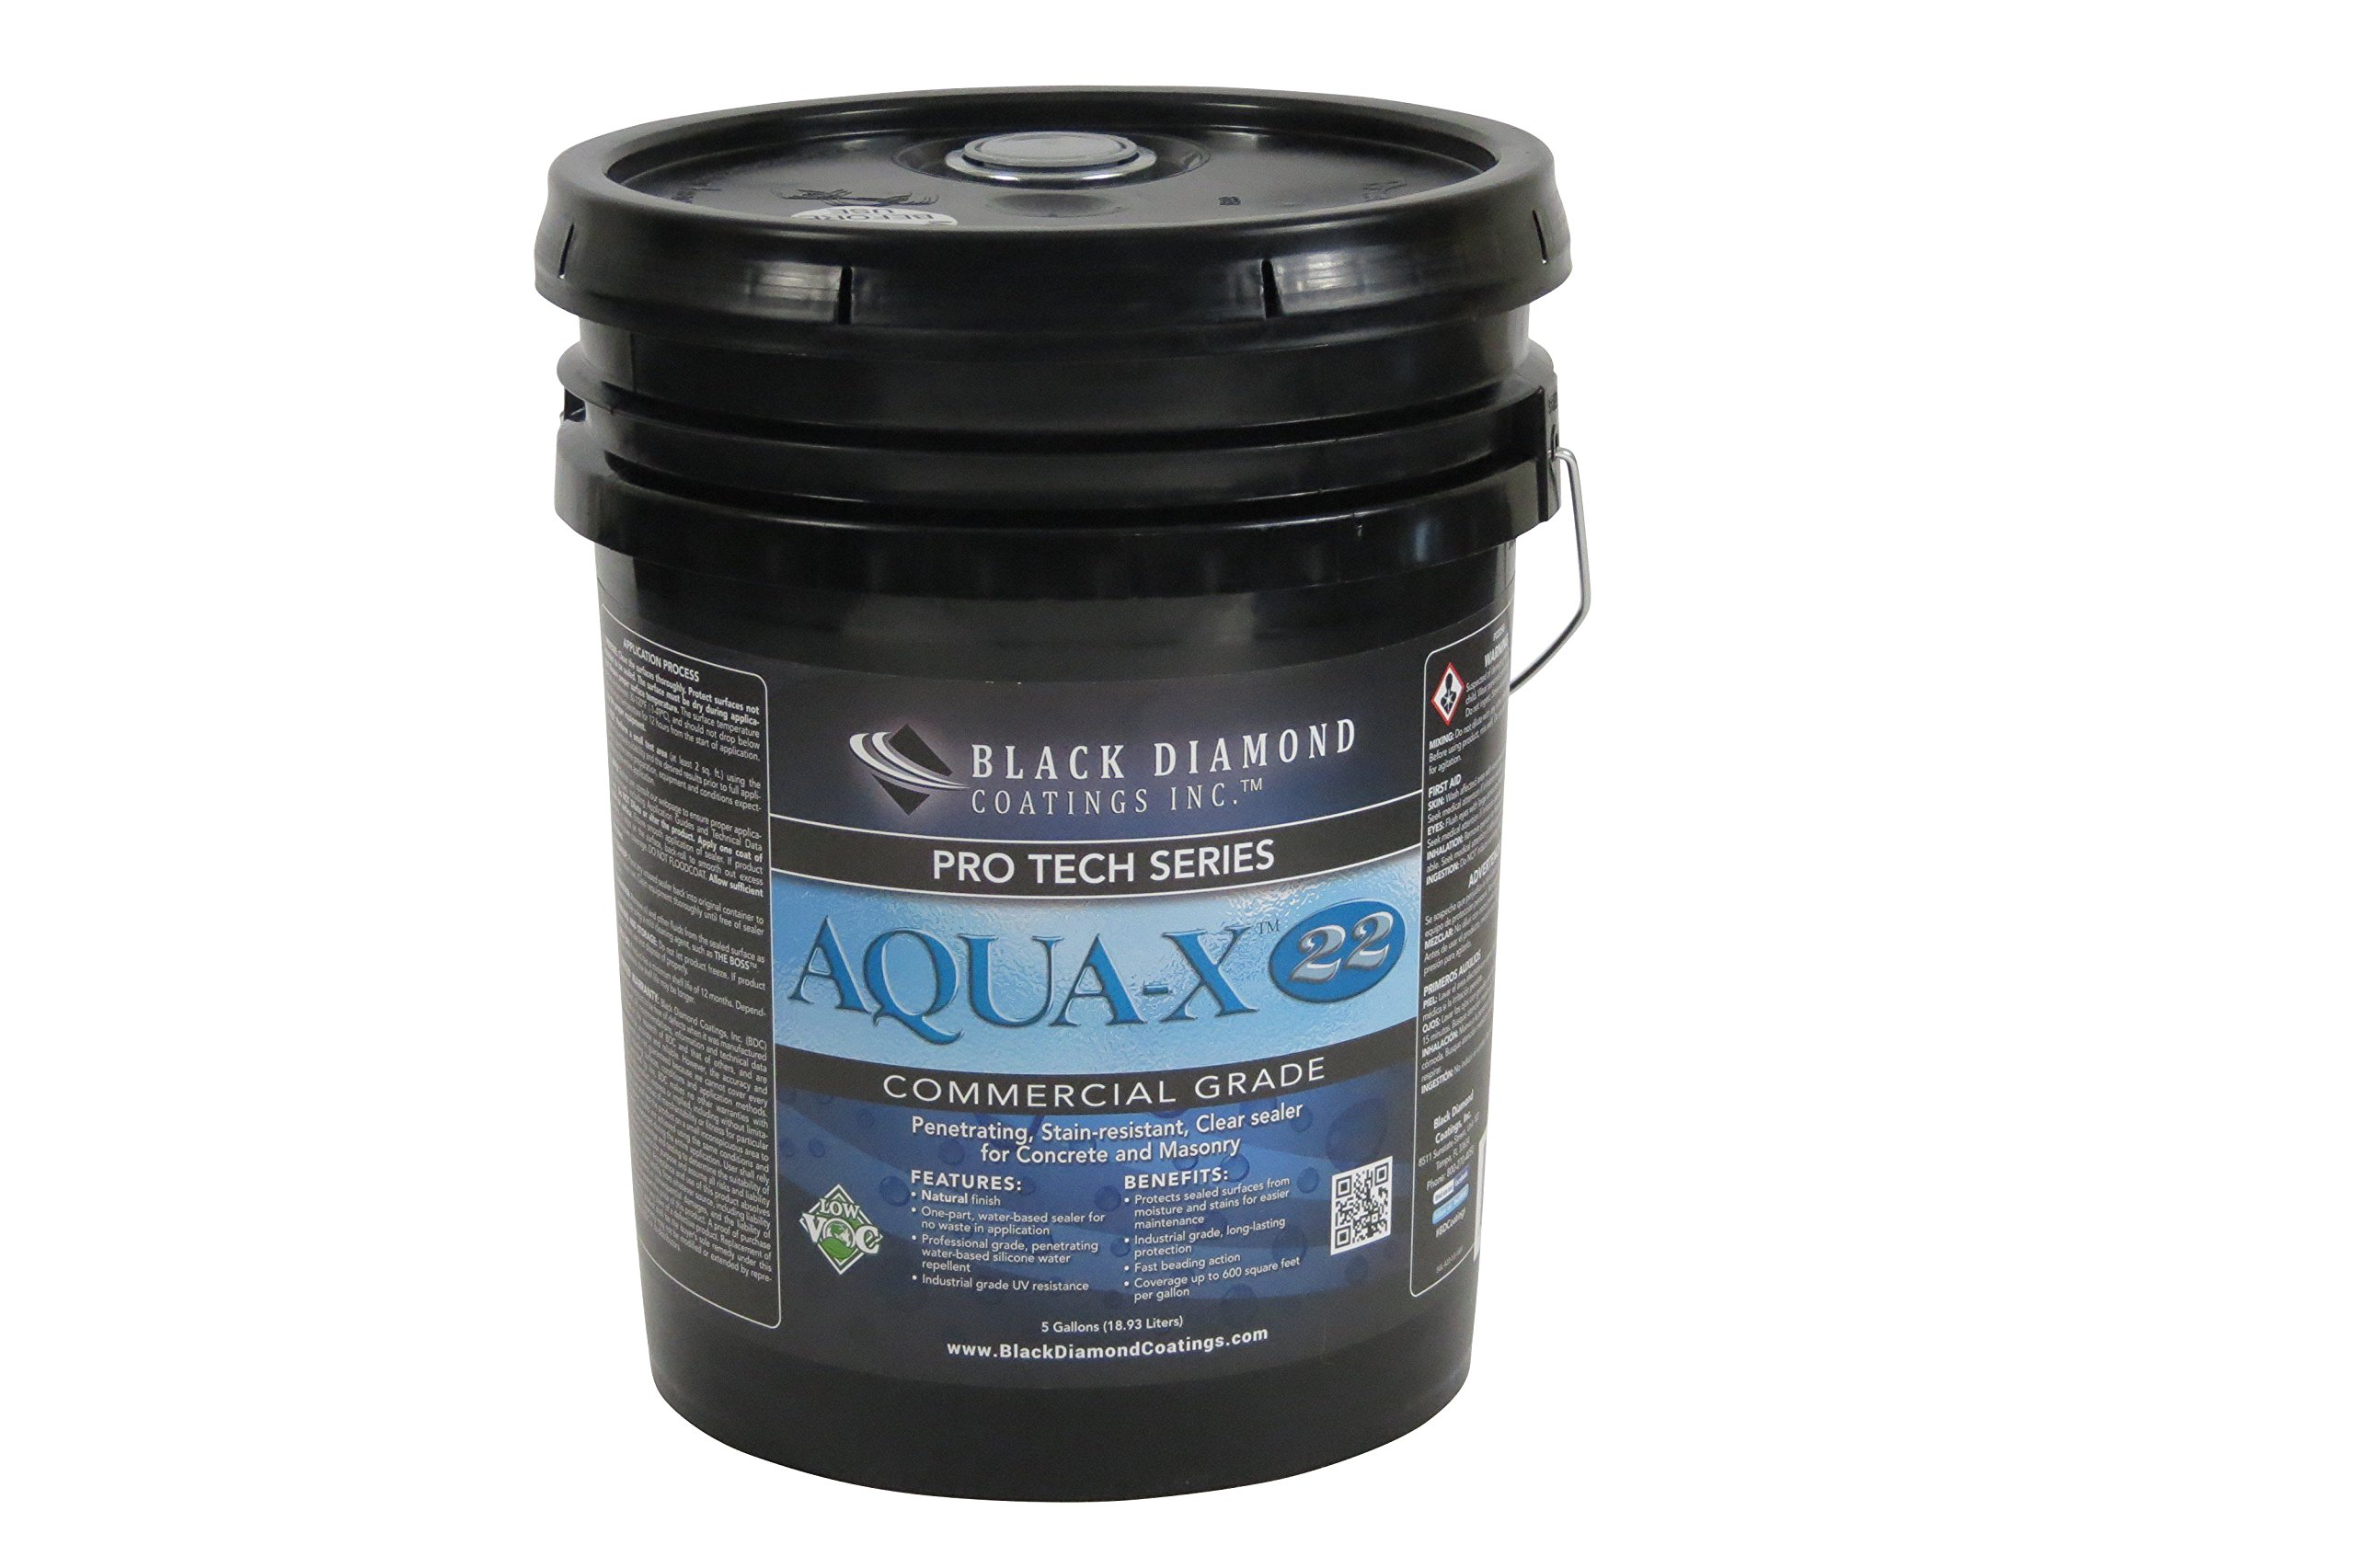 AQUA-X 22 Concrete and Masonry Sealer by Black Diamond Coatings. Penetrating and Stain Resistant Concrete Sealer. (5 Gallon)